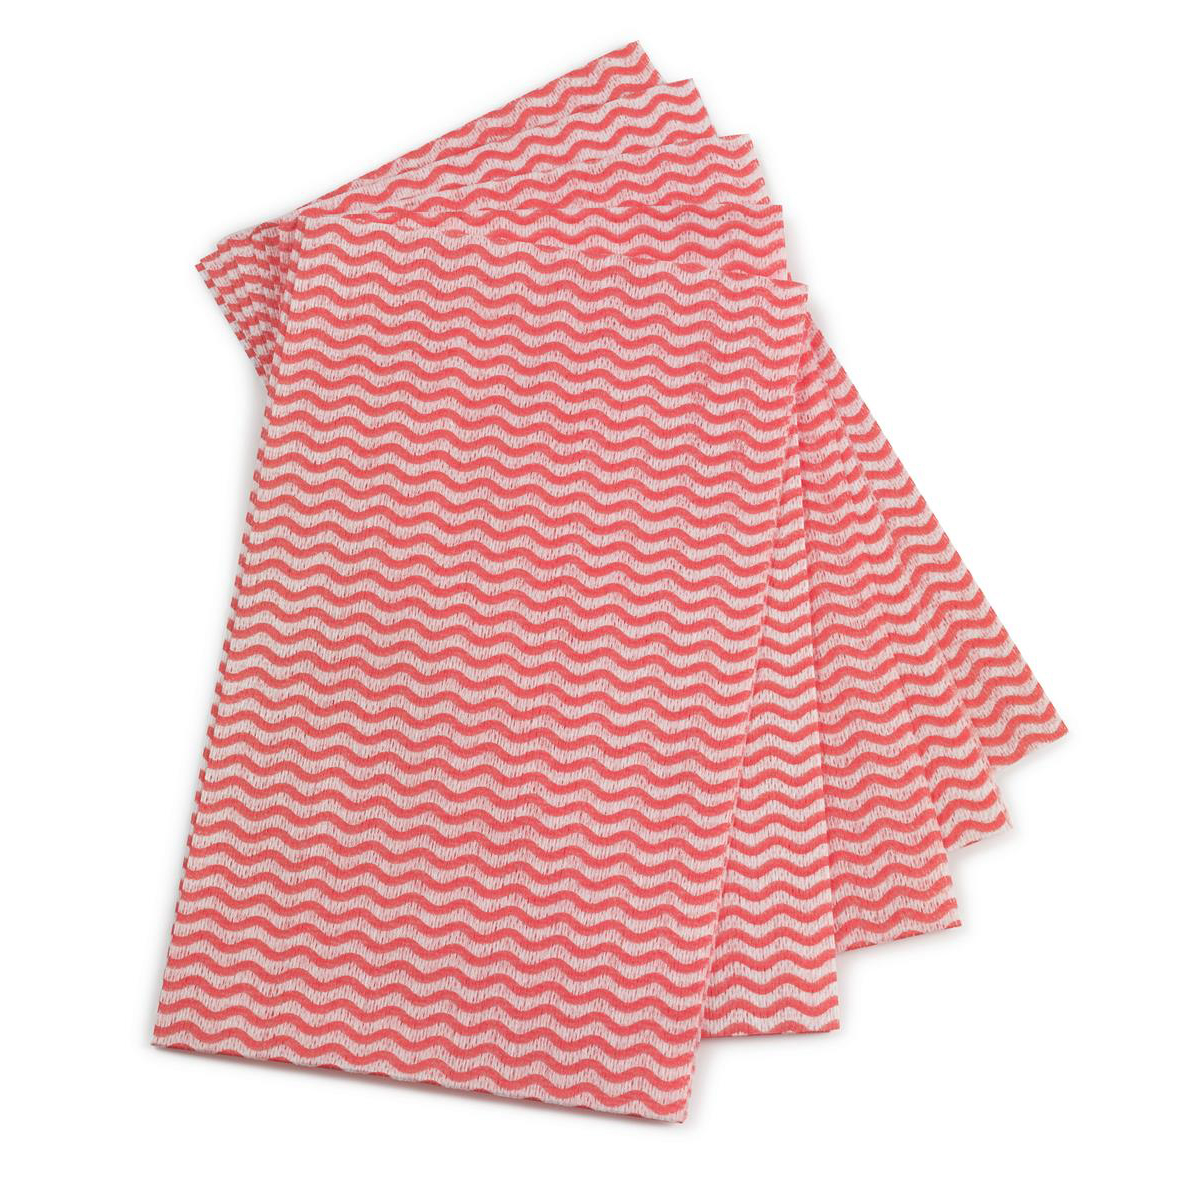 5 Star Facilities Cleaning Cloths Anti-microbial 40gsm W500xL300mm Wavy Line Red Pack 50